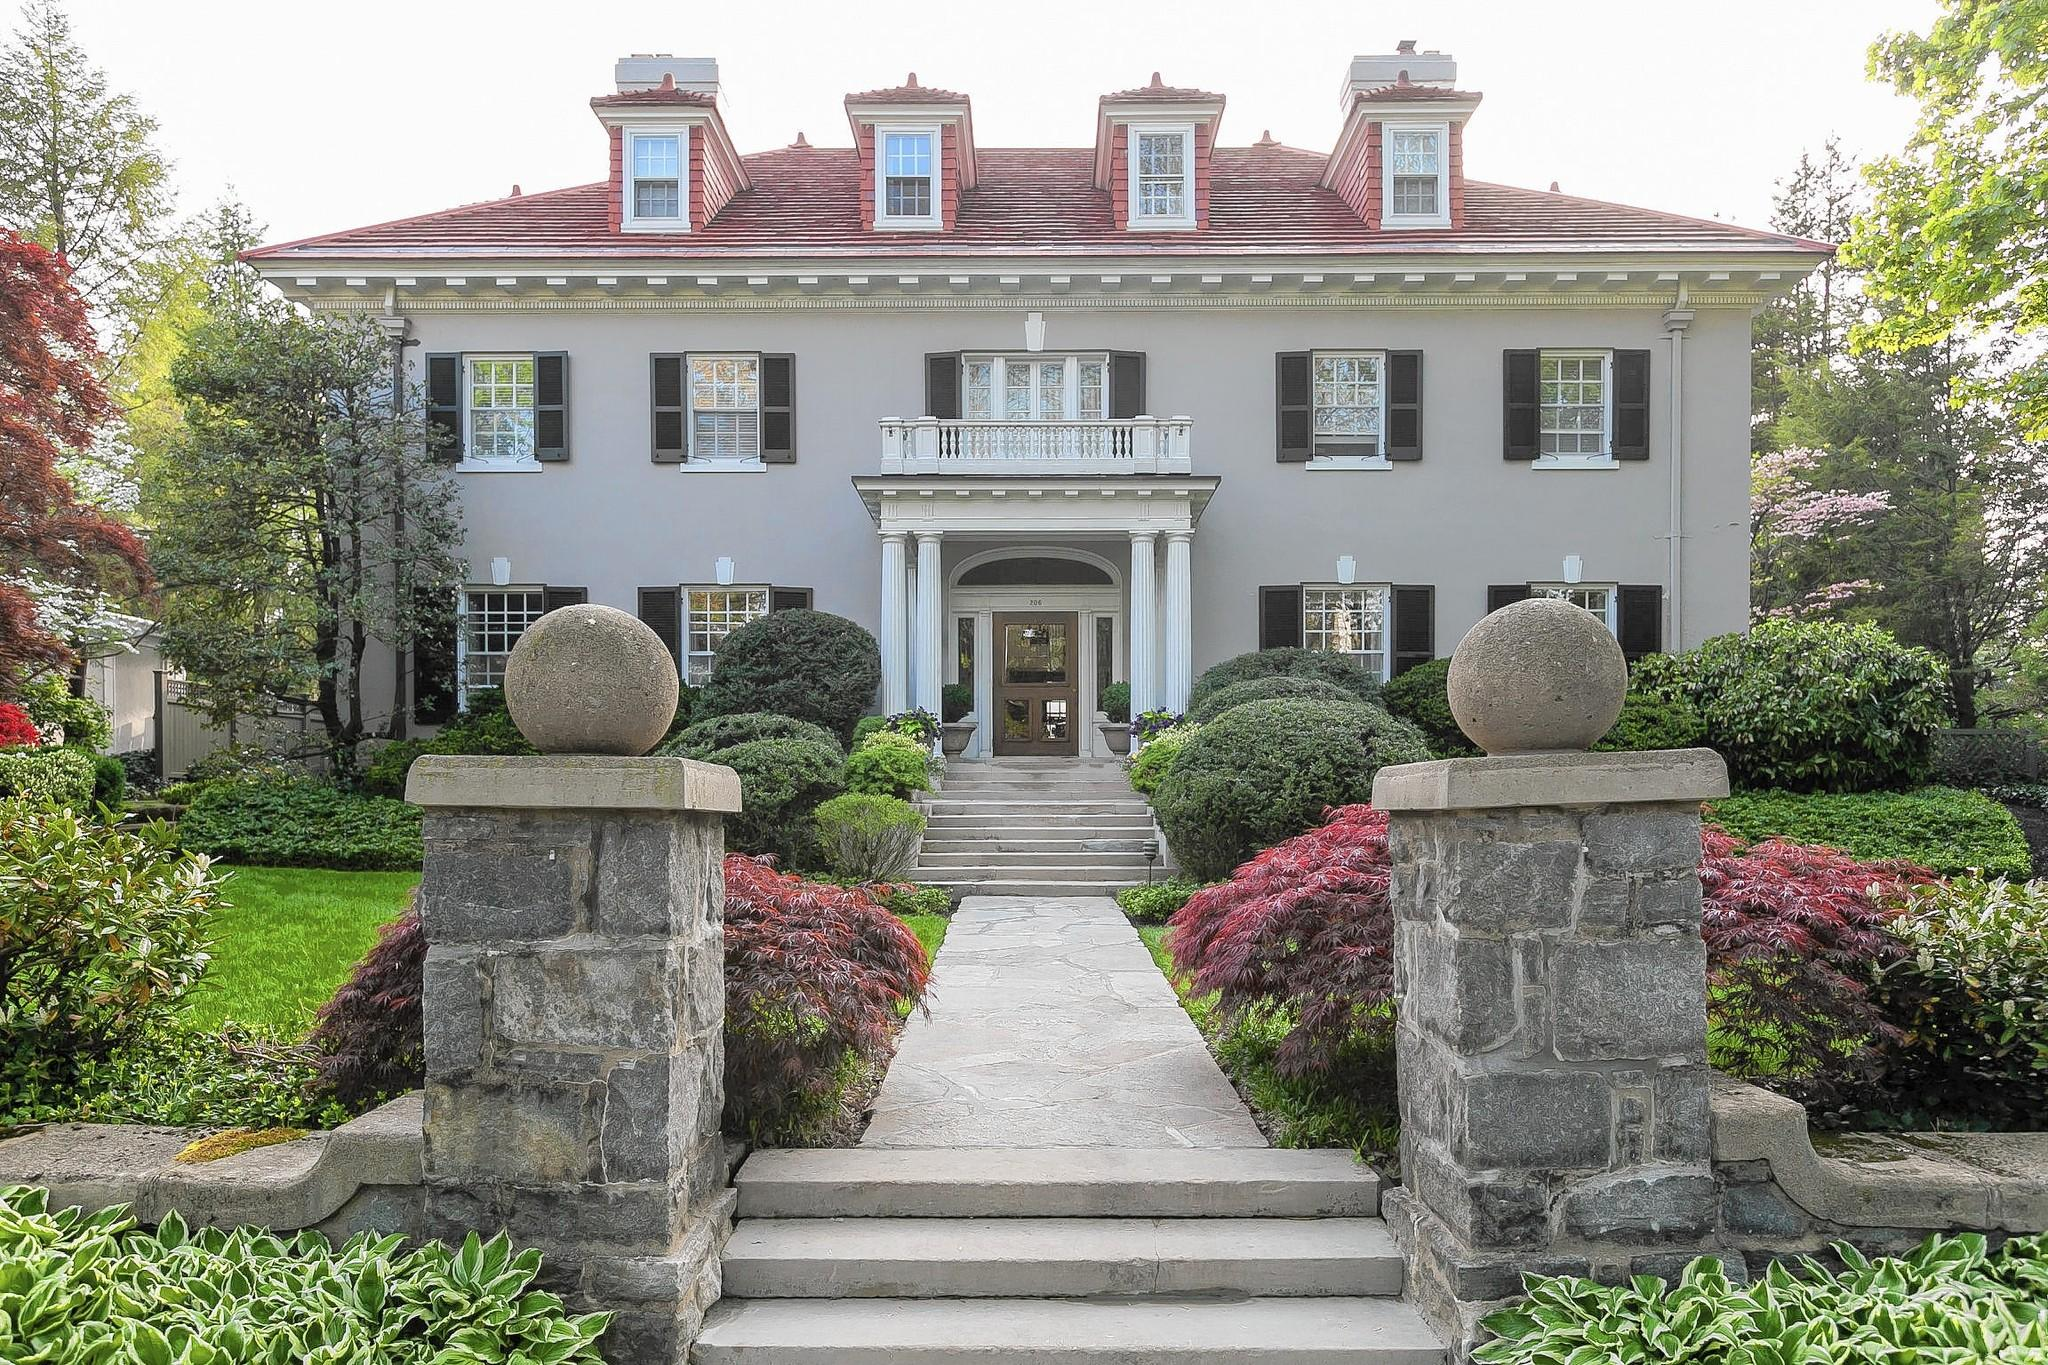 206 Goodwood Gardens Is For Sale 22 Million This Roland Park Home